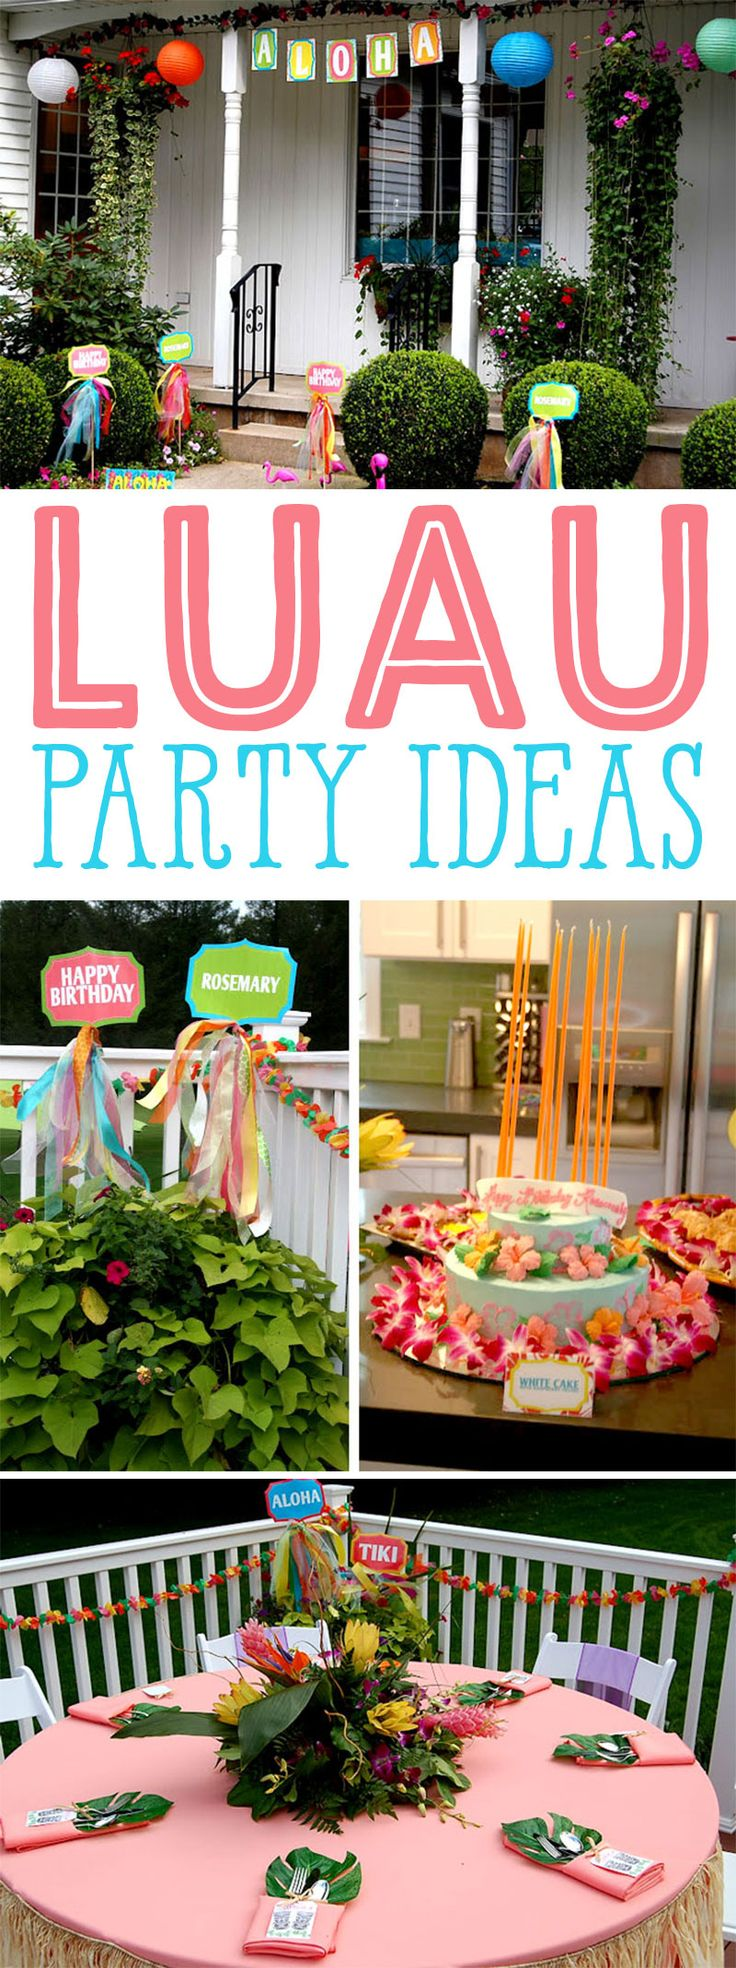 Luau Birthday Party Ideas on Love The Day